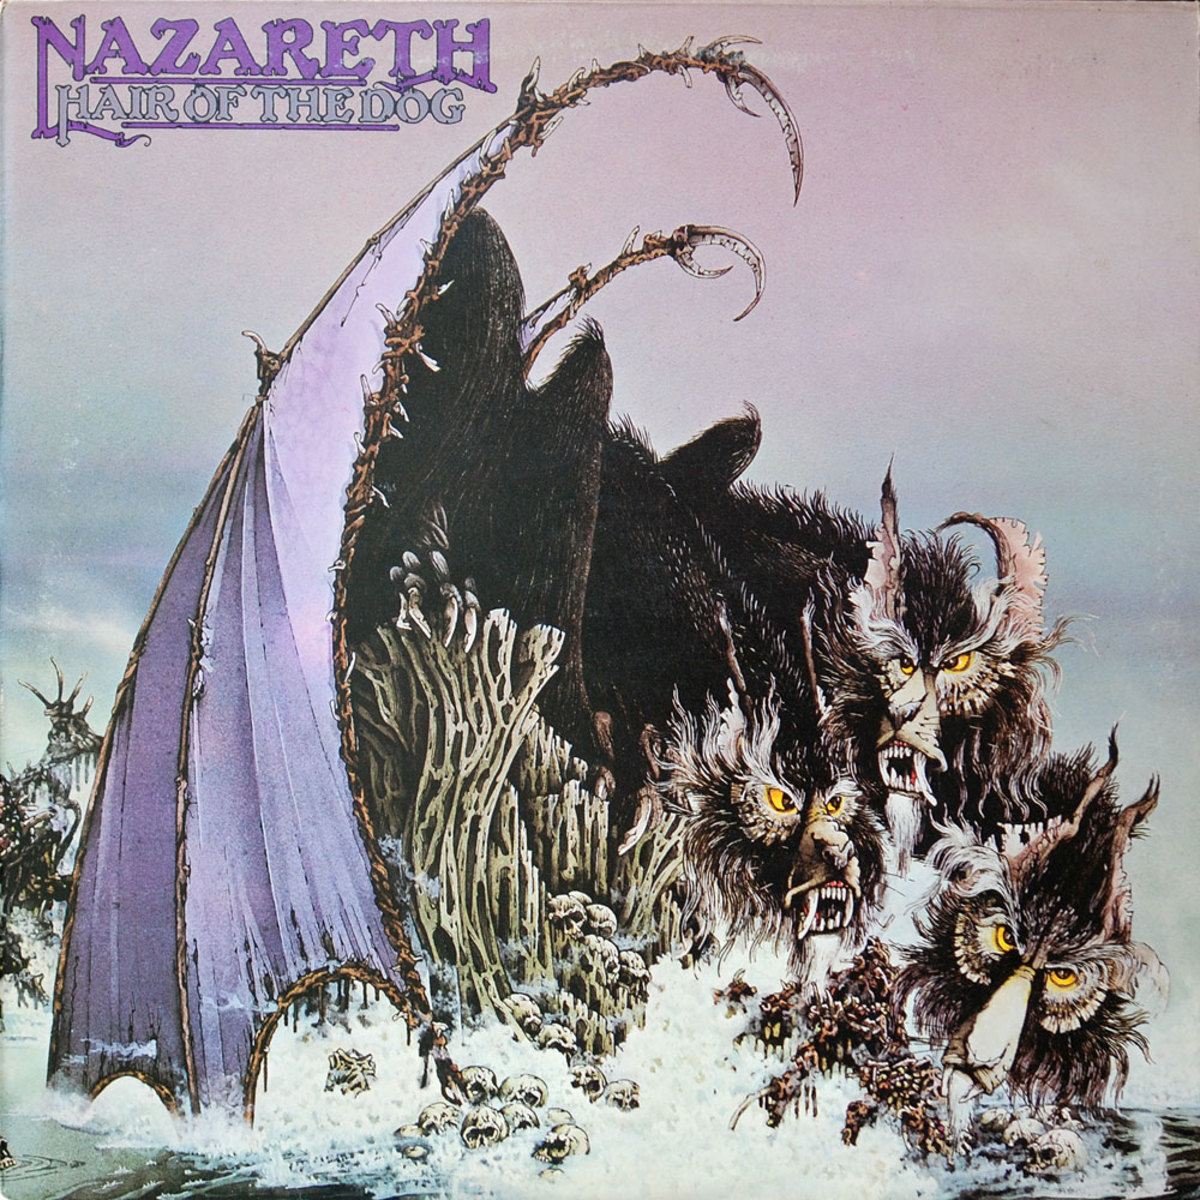 "Nazareth ""Hair Of the Dog"" Mooncrest Records CREST 27 12"" LP Vinyl Record UK Pressing (1975) Album Cover Art by David Roe"